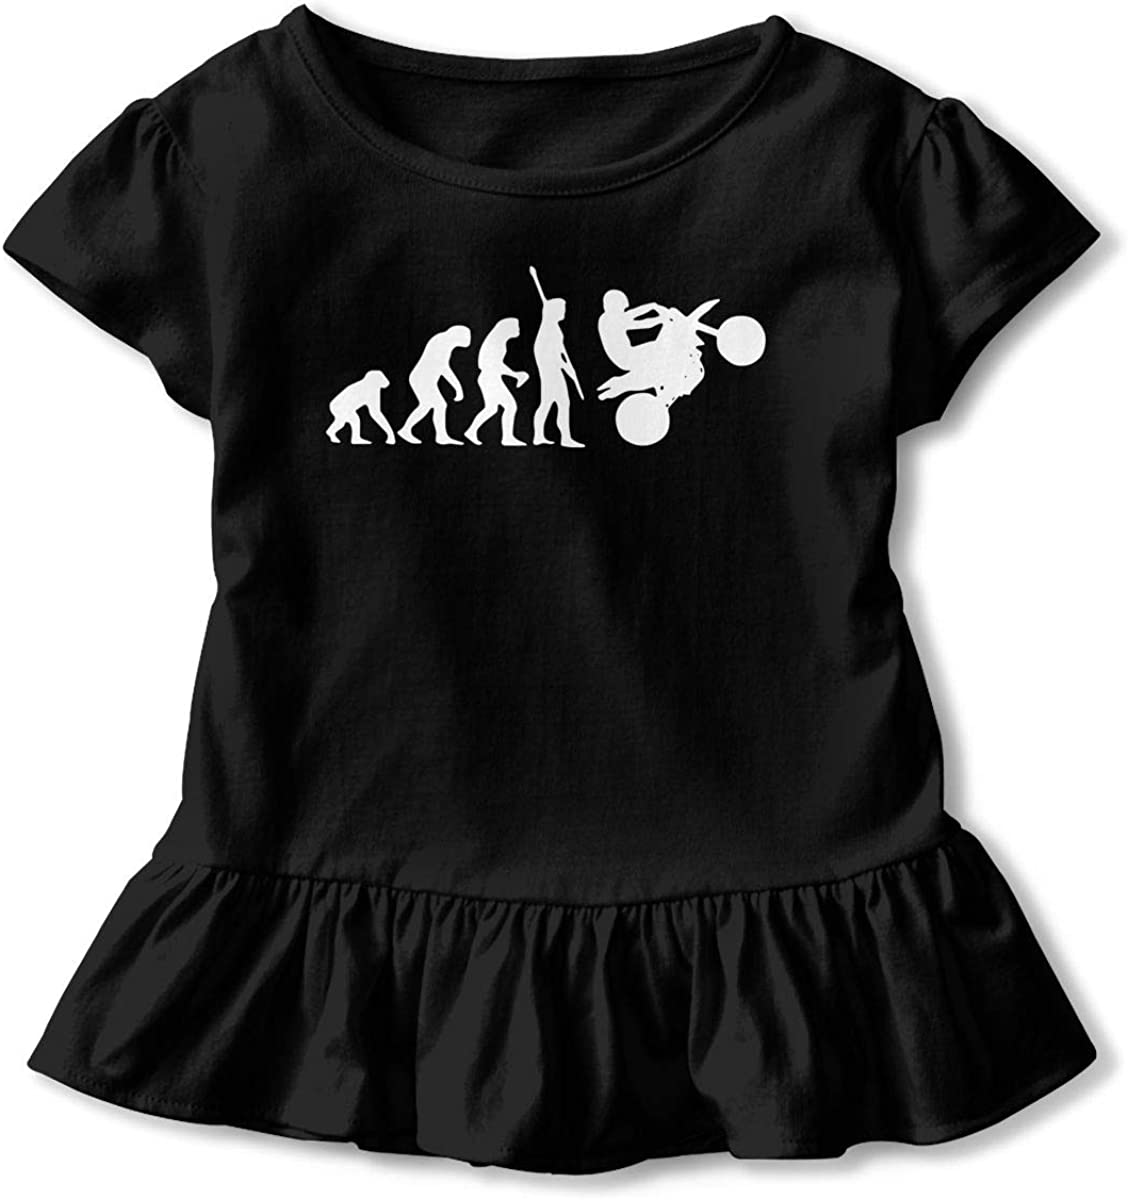 TRR8S//1 Human Evolution Motorcycle Car1 Funny Ruffle Cotton Tops Tee Clothes Graphic for Toddler Baby Girl Gift